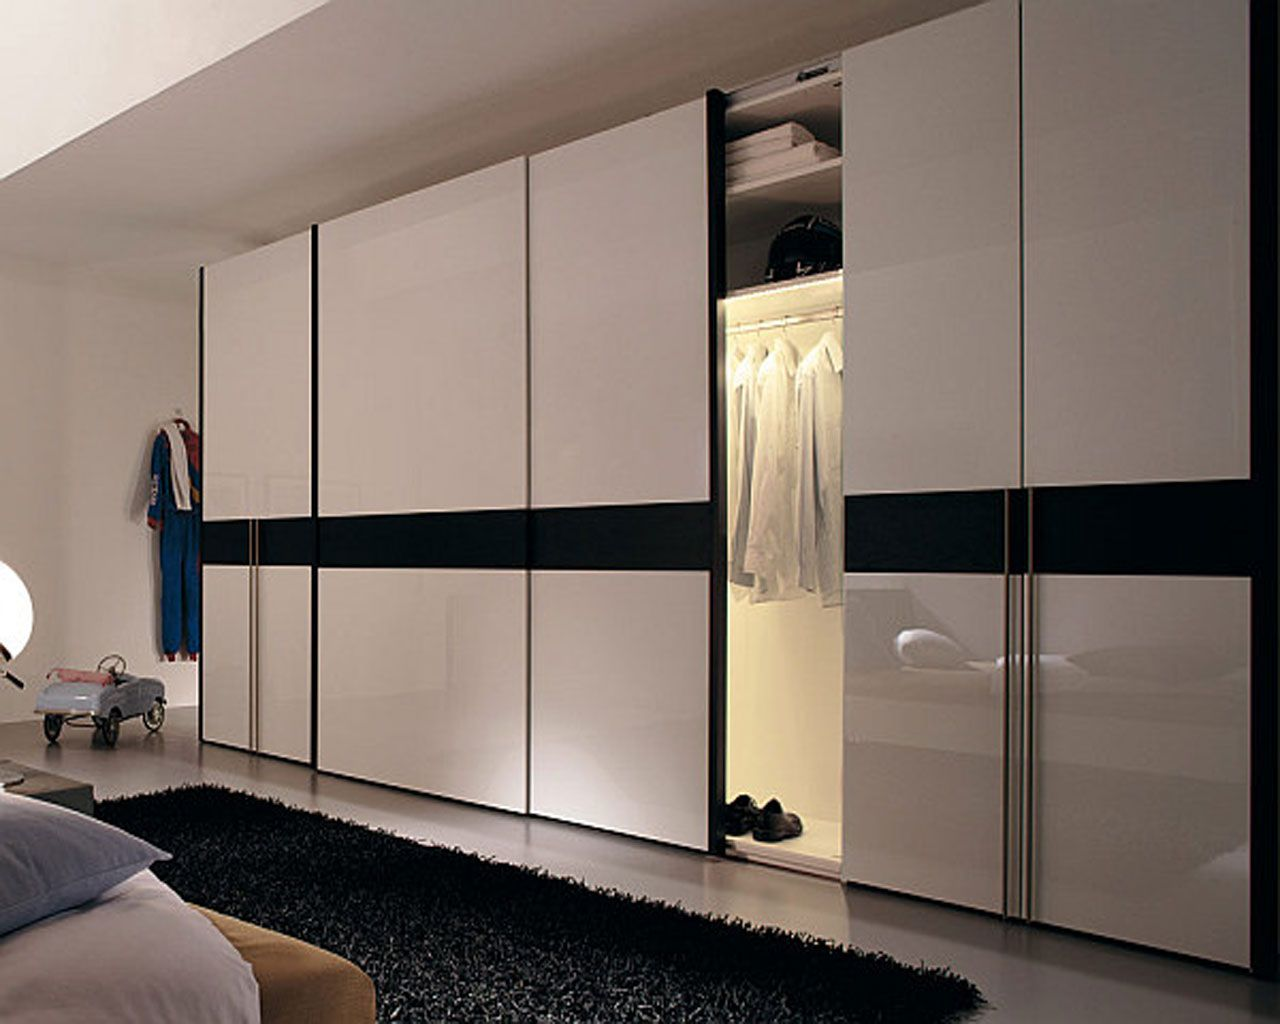 Stunning Bedroom Sliding Doors Pictures - Telkom.us - telkom.us ...